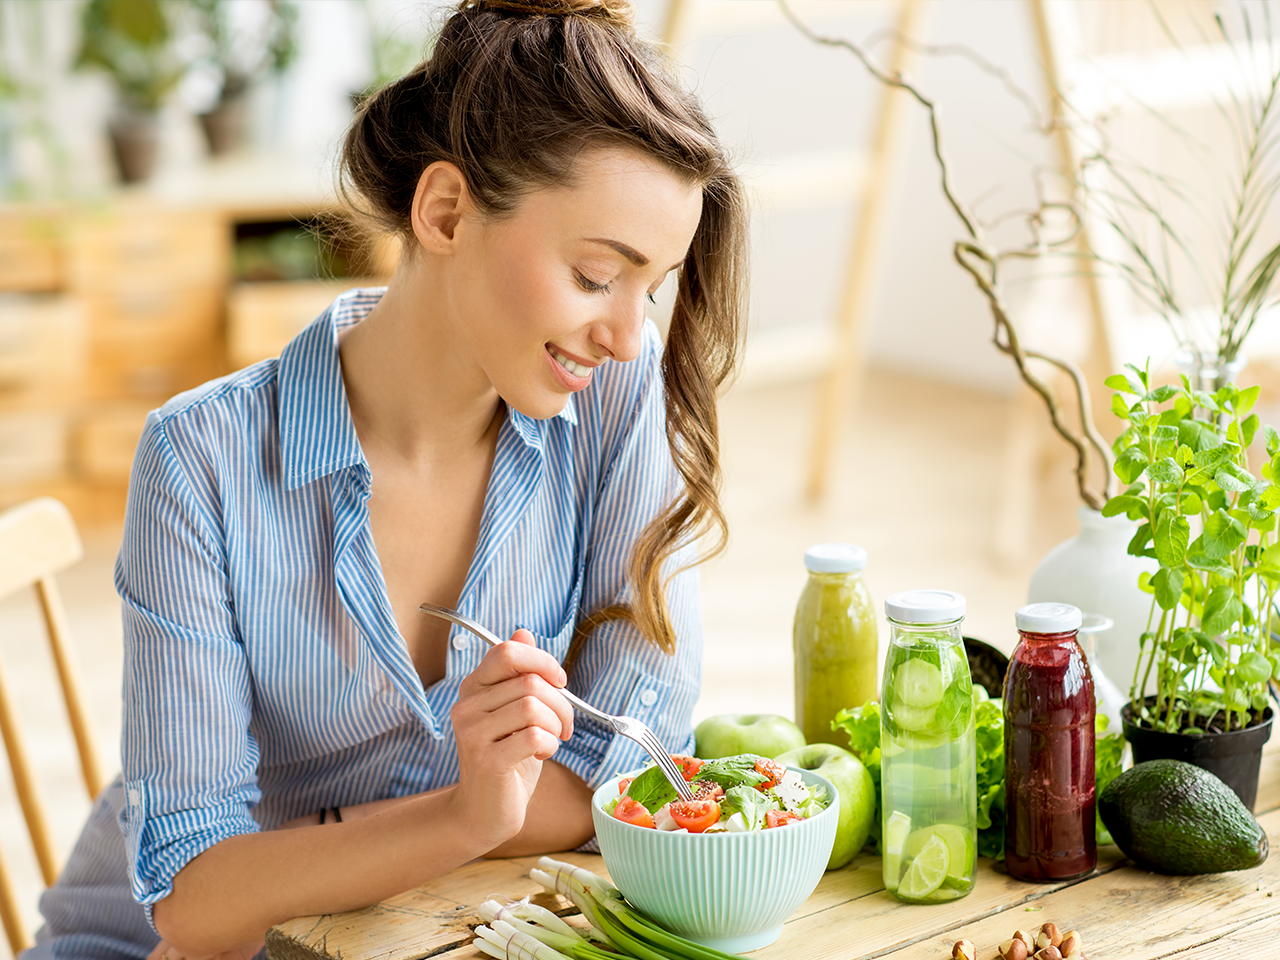 Girl eating gut health conscious foods